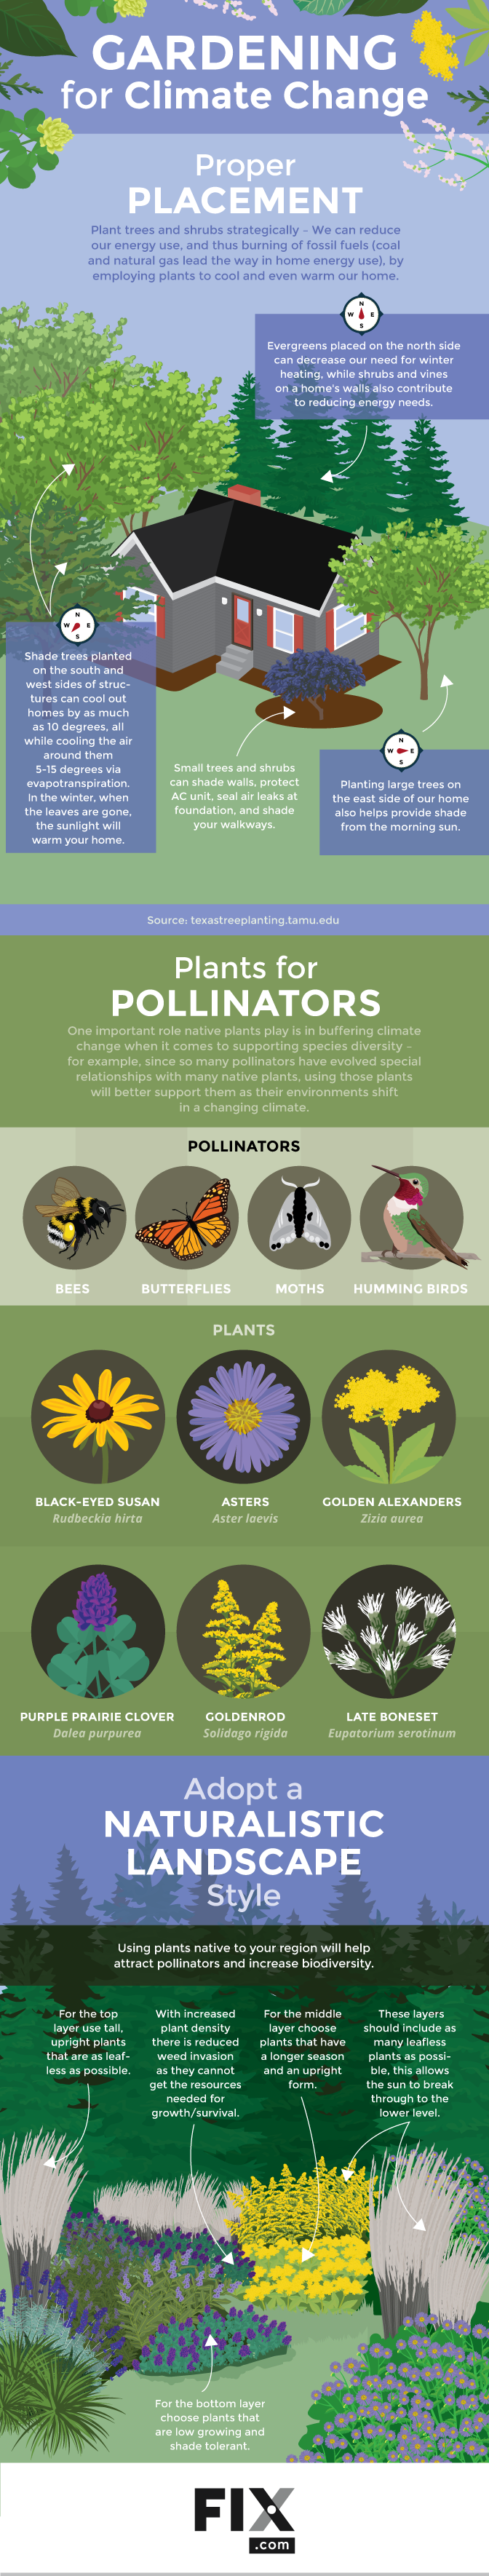 Gardening for Climate Change [Visual] | ecogreenlove